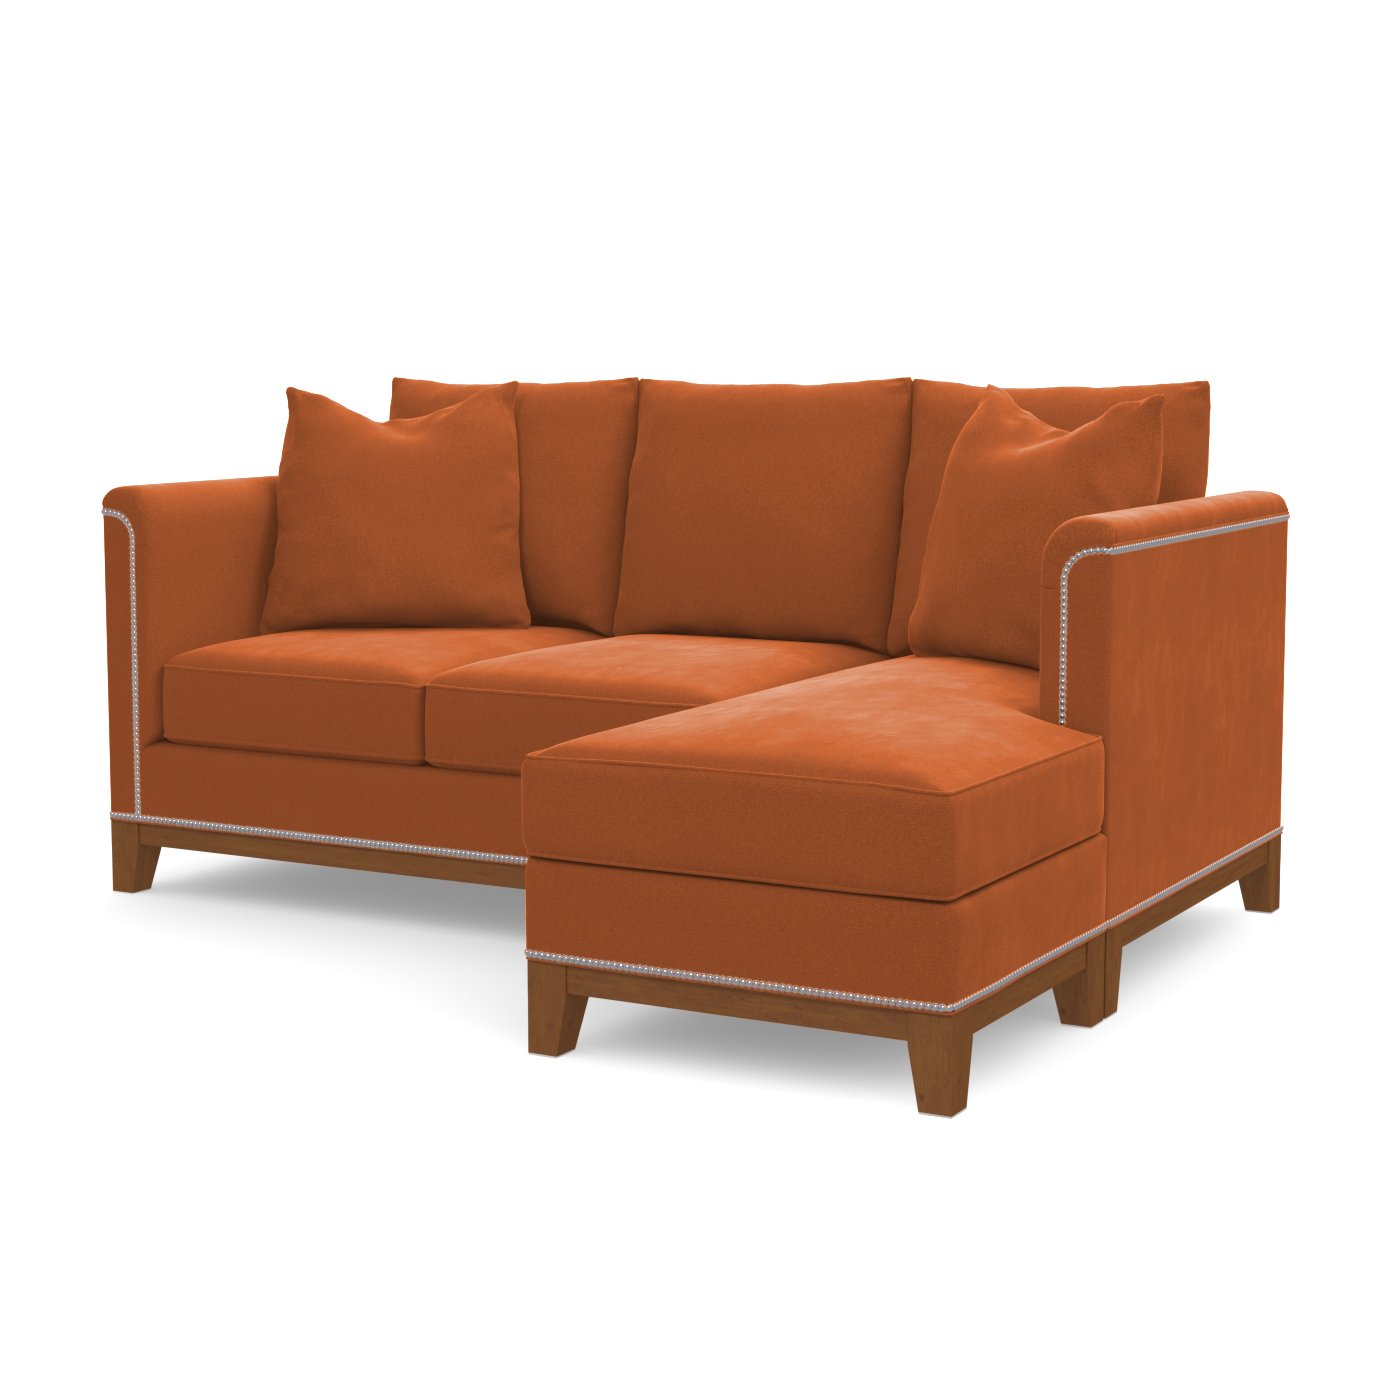 Modern Sectional Sofas: Reversible 2-, 3- & 5-Piece Designs ...